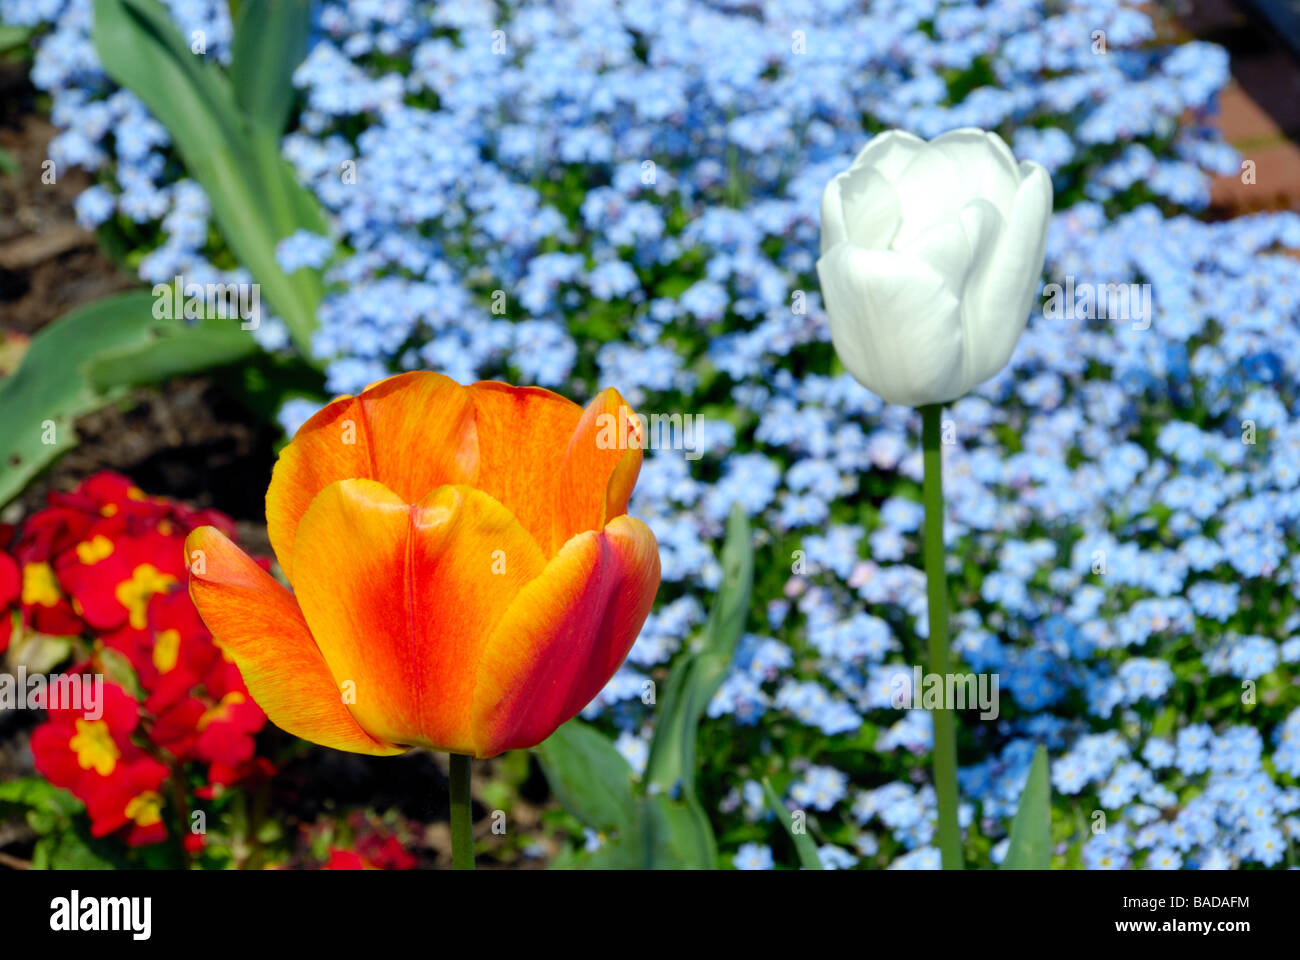 South norwood park beautiful tulip flower composition stock photo south norwood park beautiful tulip flower composition izmirmasajfo